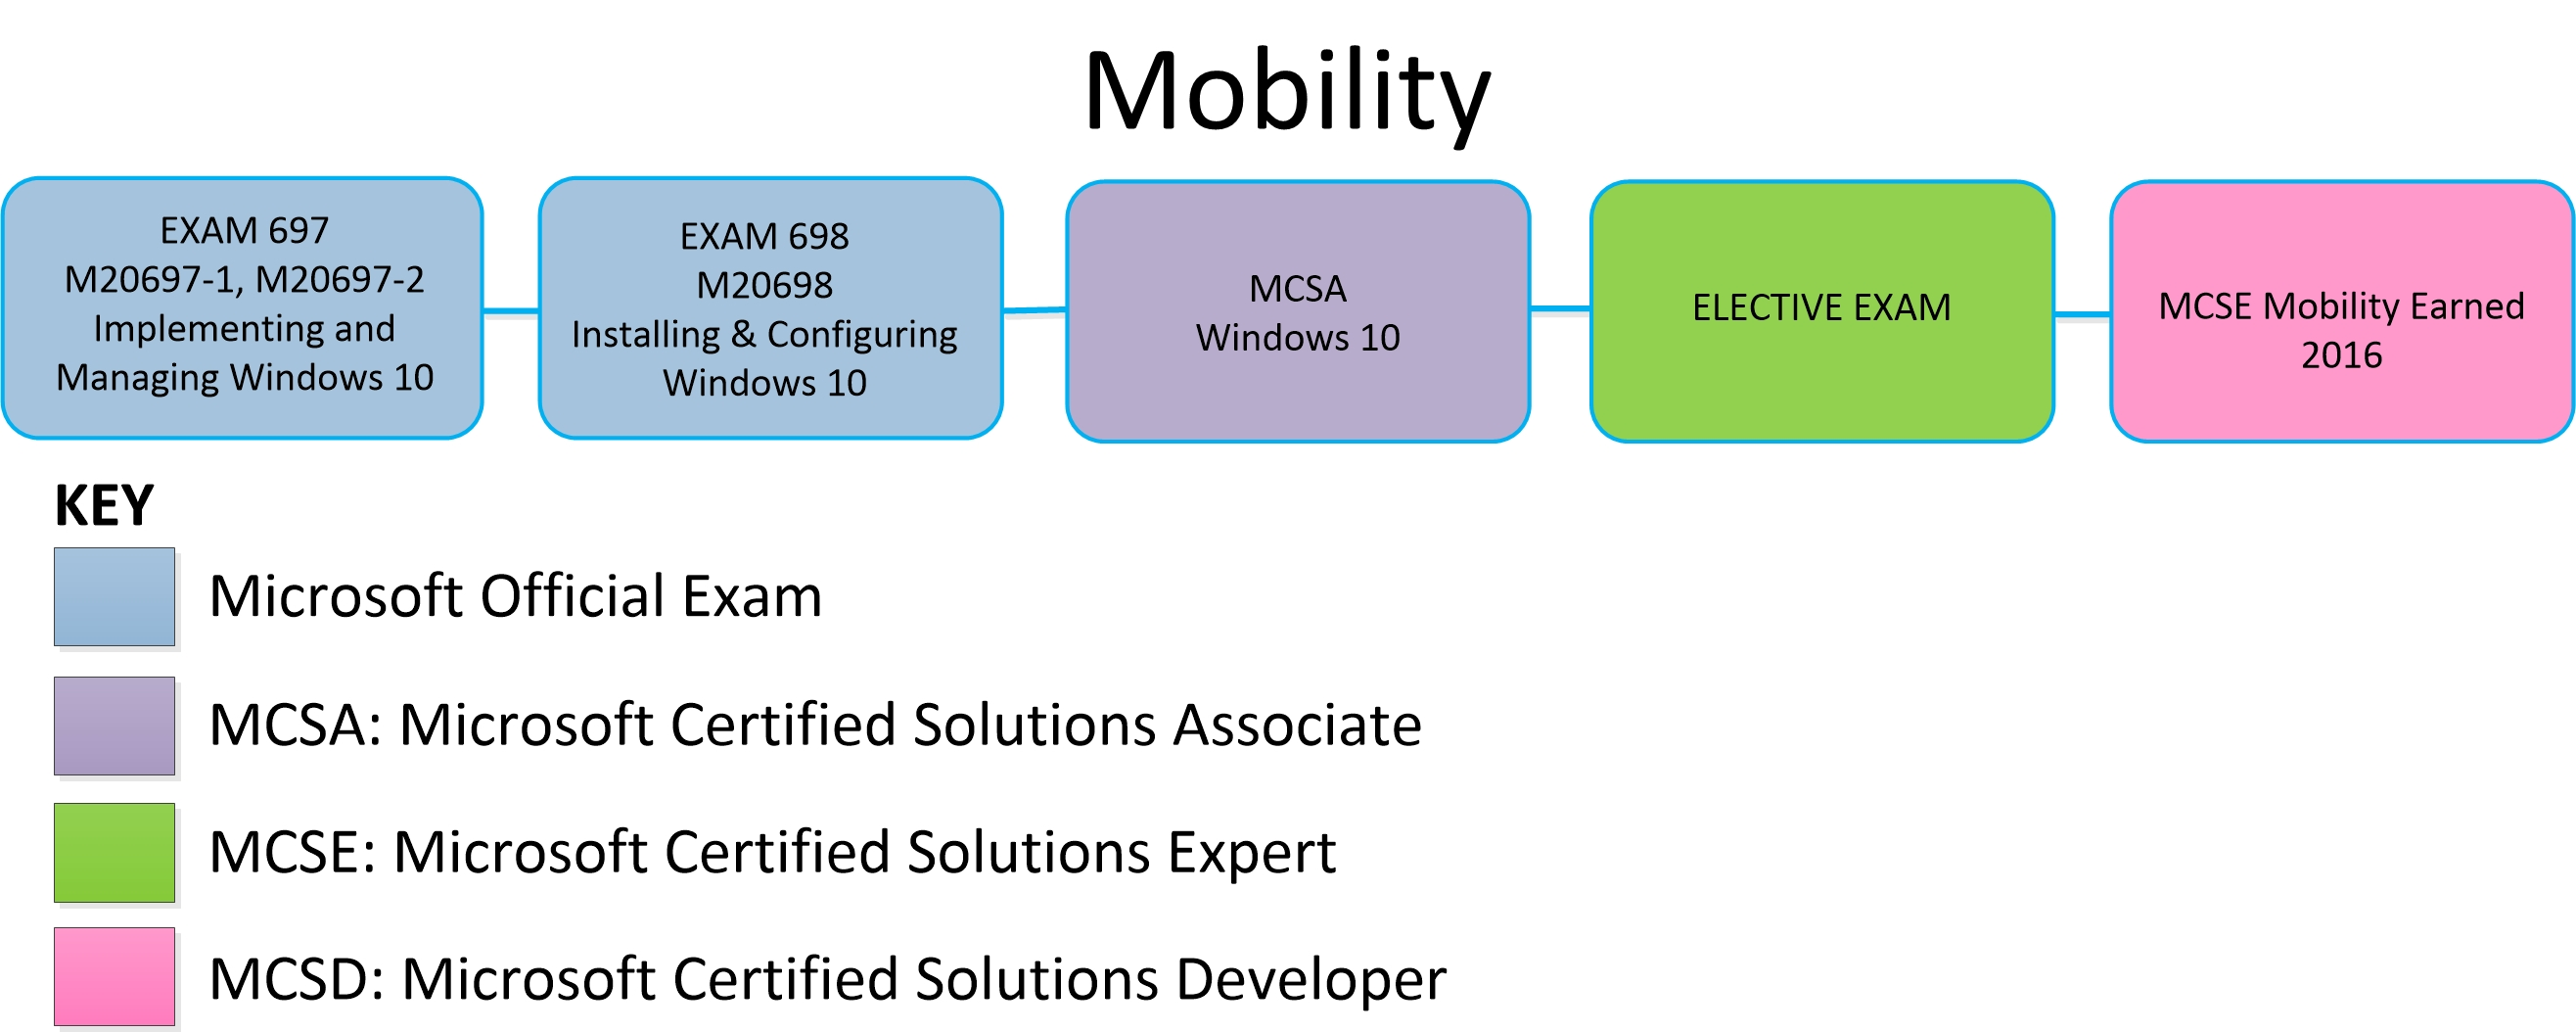 Microsoft certification training for it professionals envision microsoft certification mobility xflitez Image collections